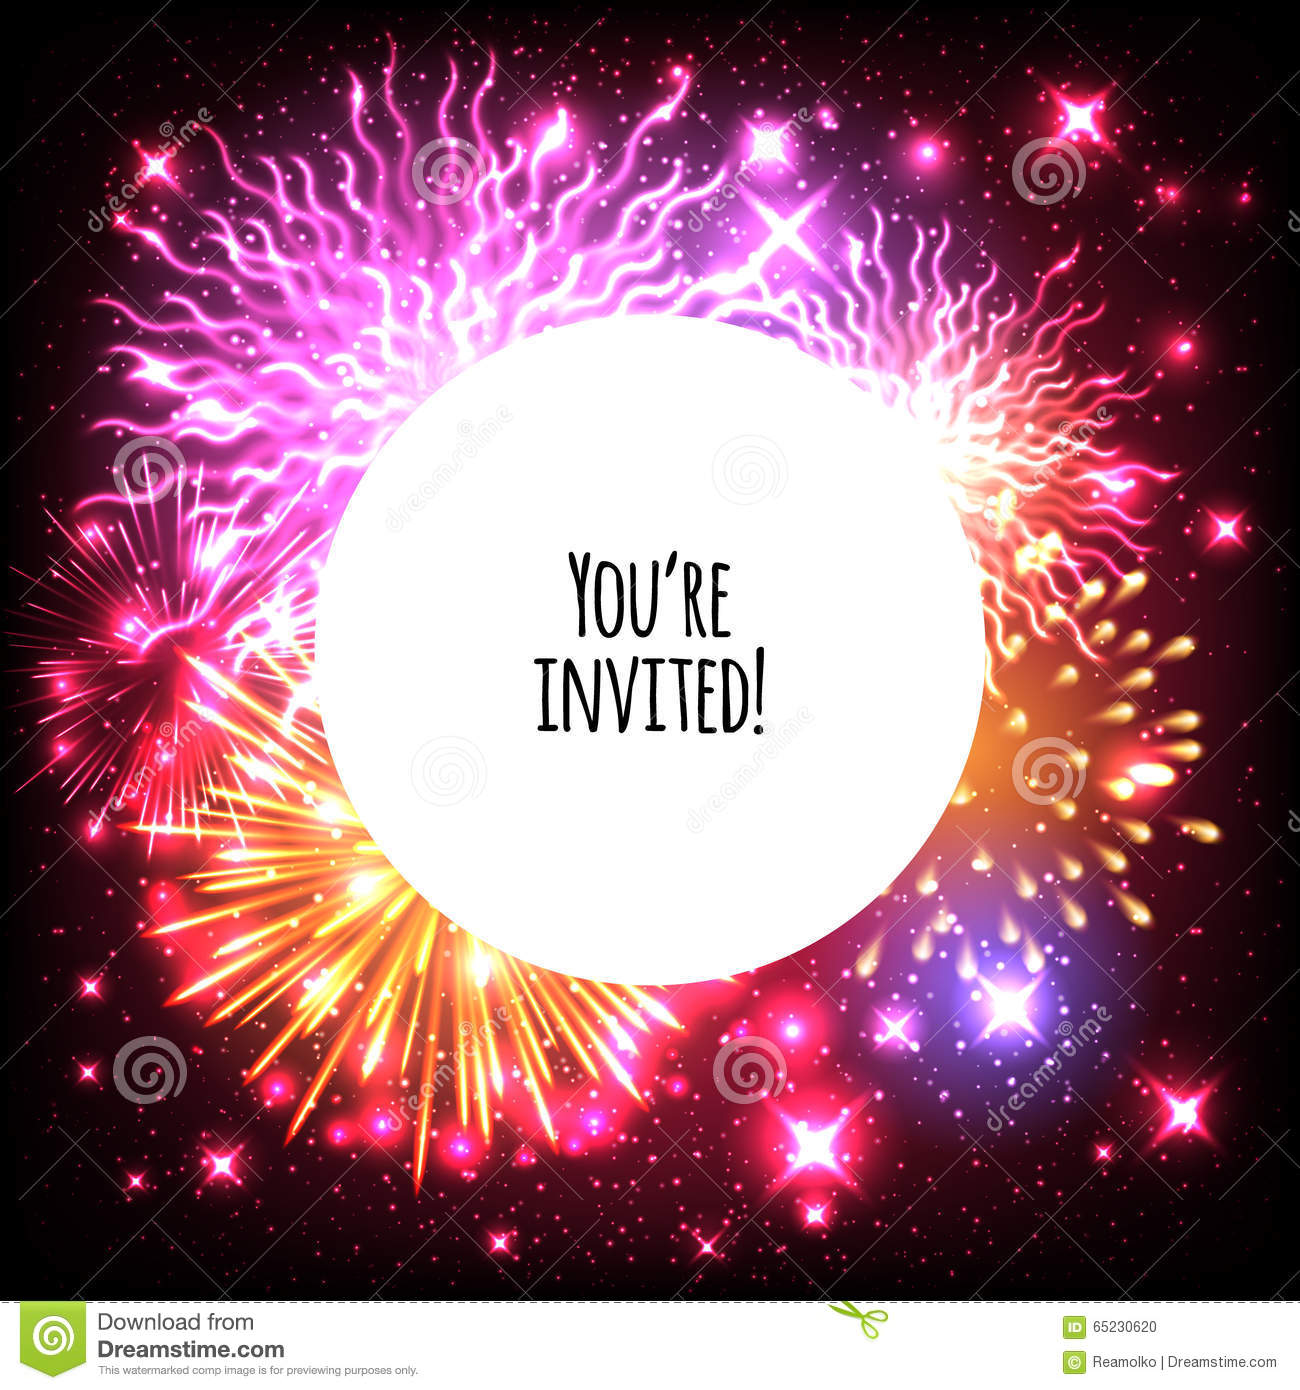 Glow Invitation for adorable invitations layout